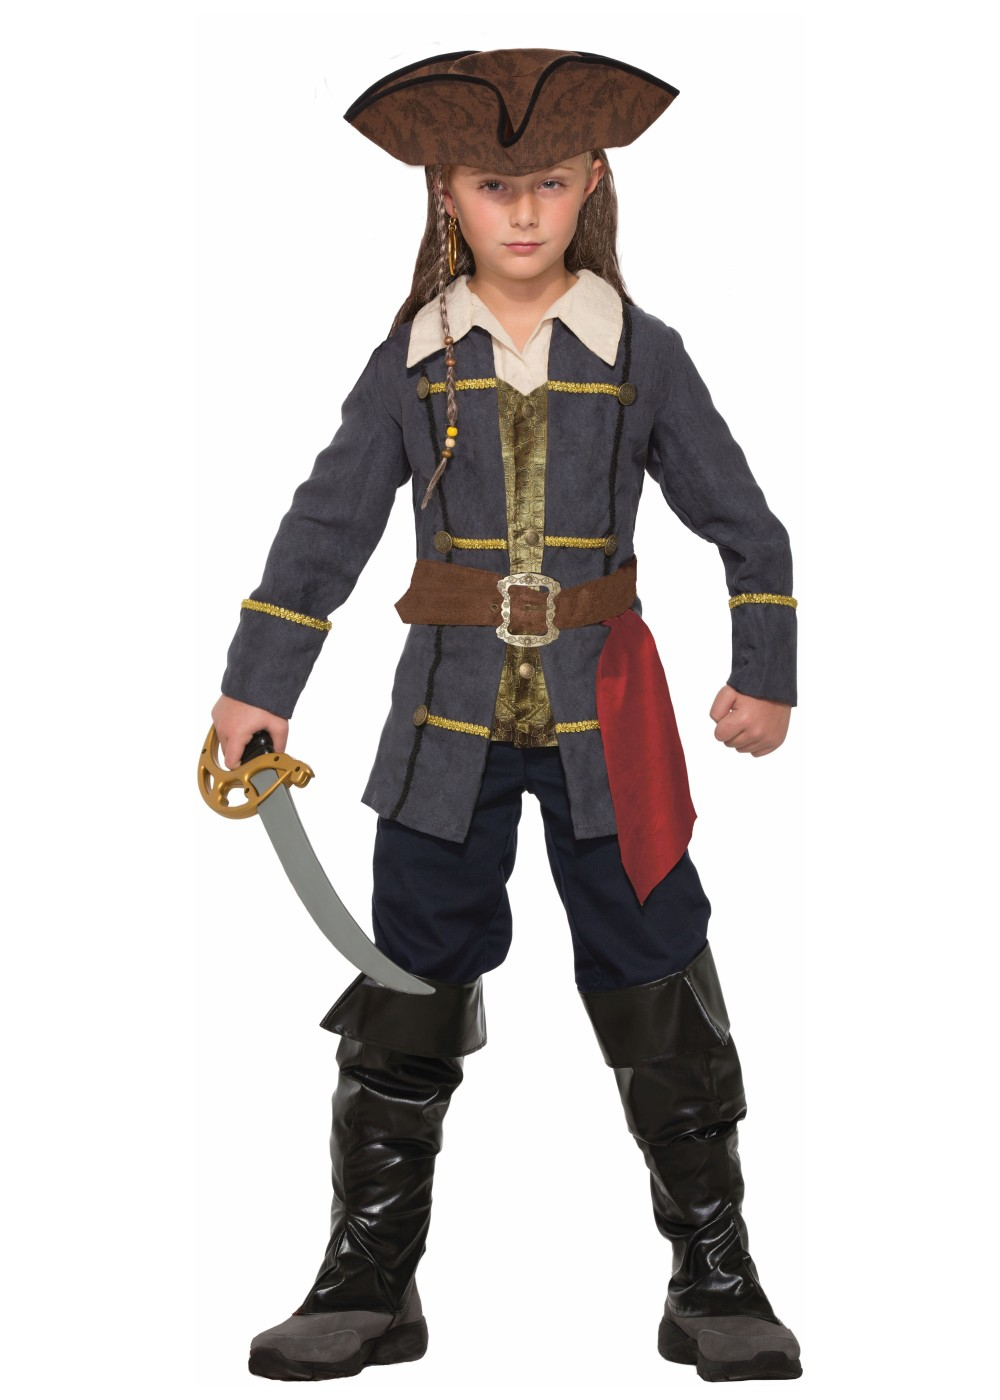 Pirate Captain Boys Costume - Pirate Costumes - New for 2017